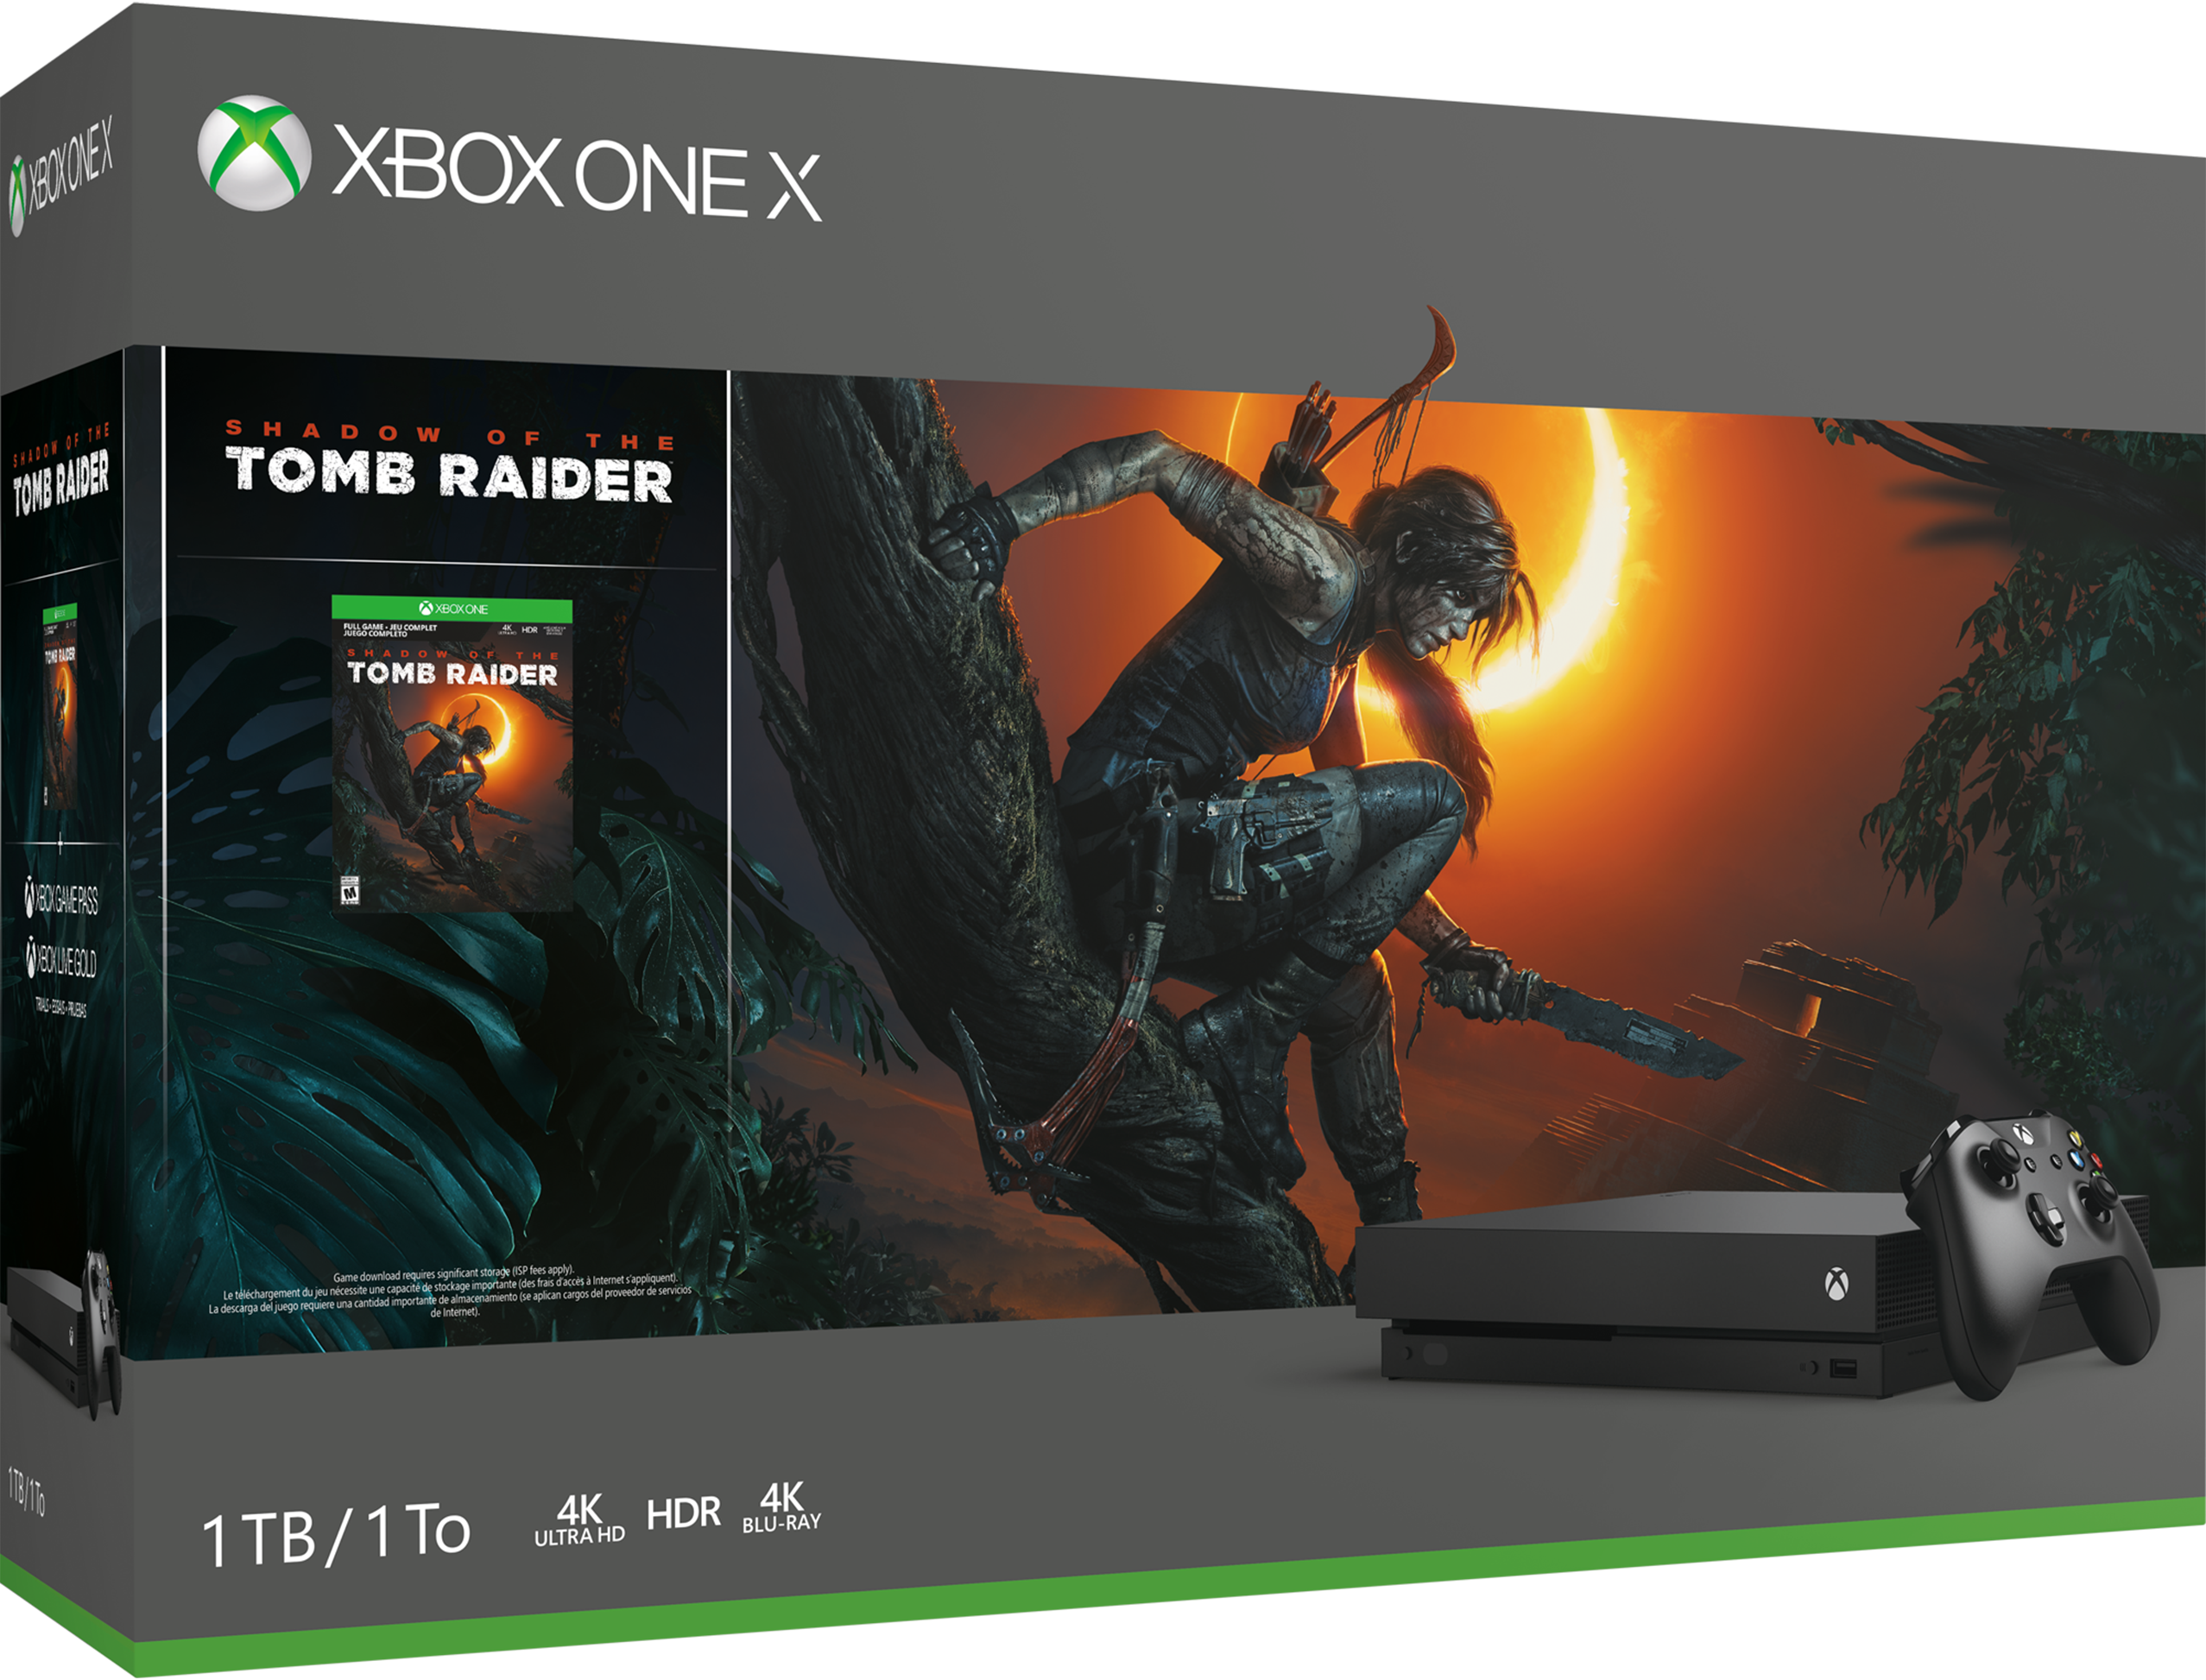 Xbox One X Shadow of the Tomb Raider bundle with a game